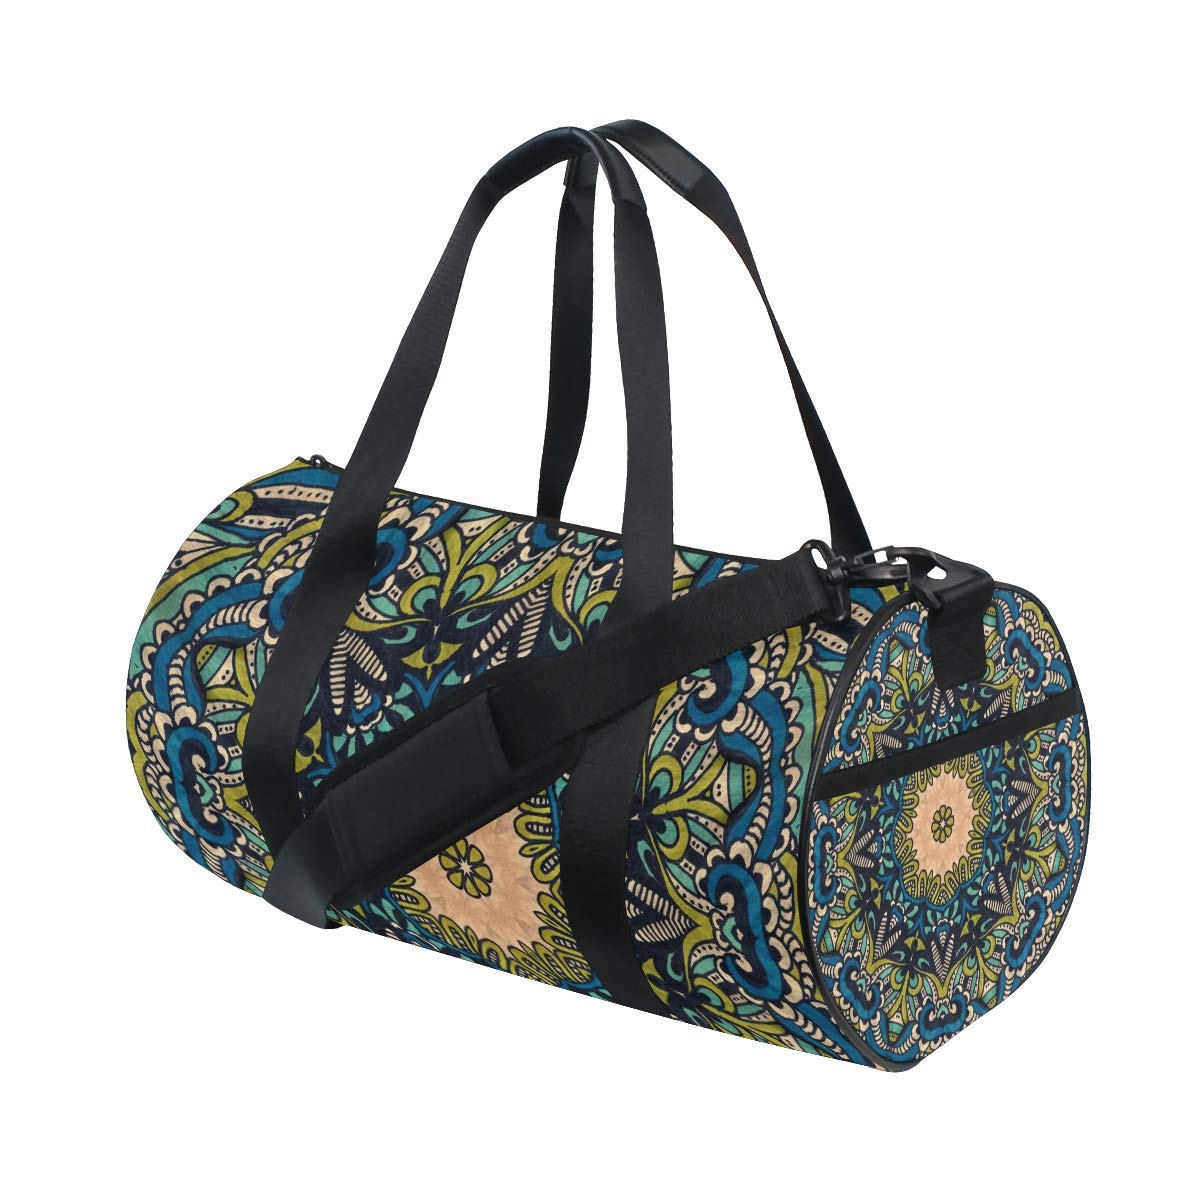 Mandala Bohemian Yoga Sports Gym Duffle Bags Tote Sling Travel Bag Patterned Canvas with Pocket and Zipper For Men Women Bag